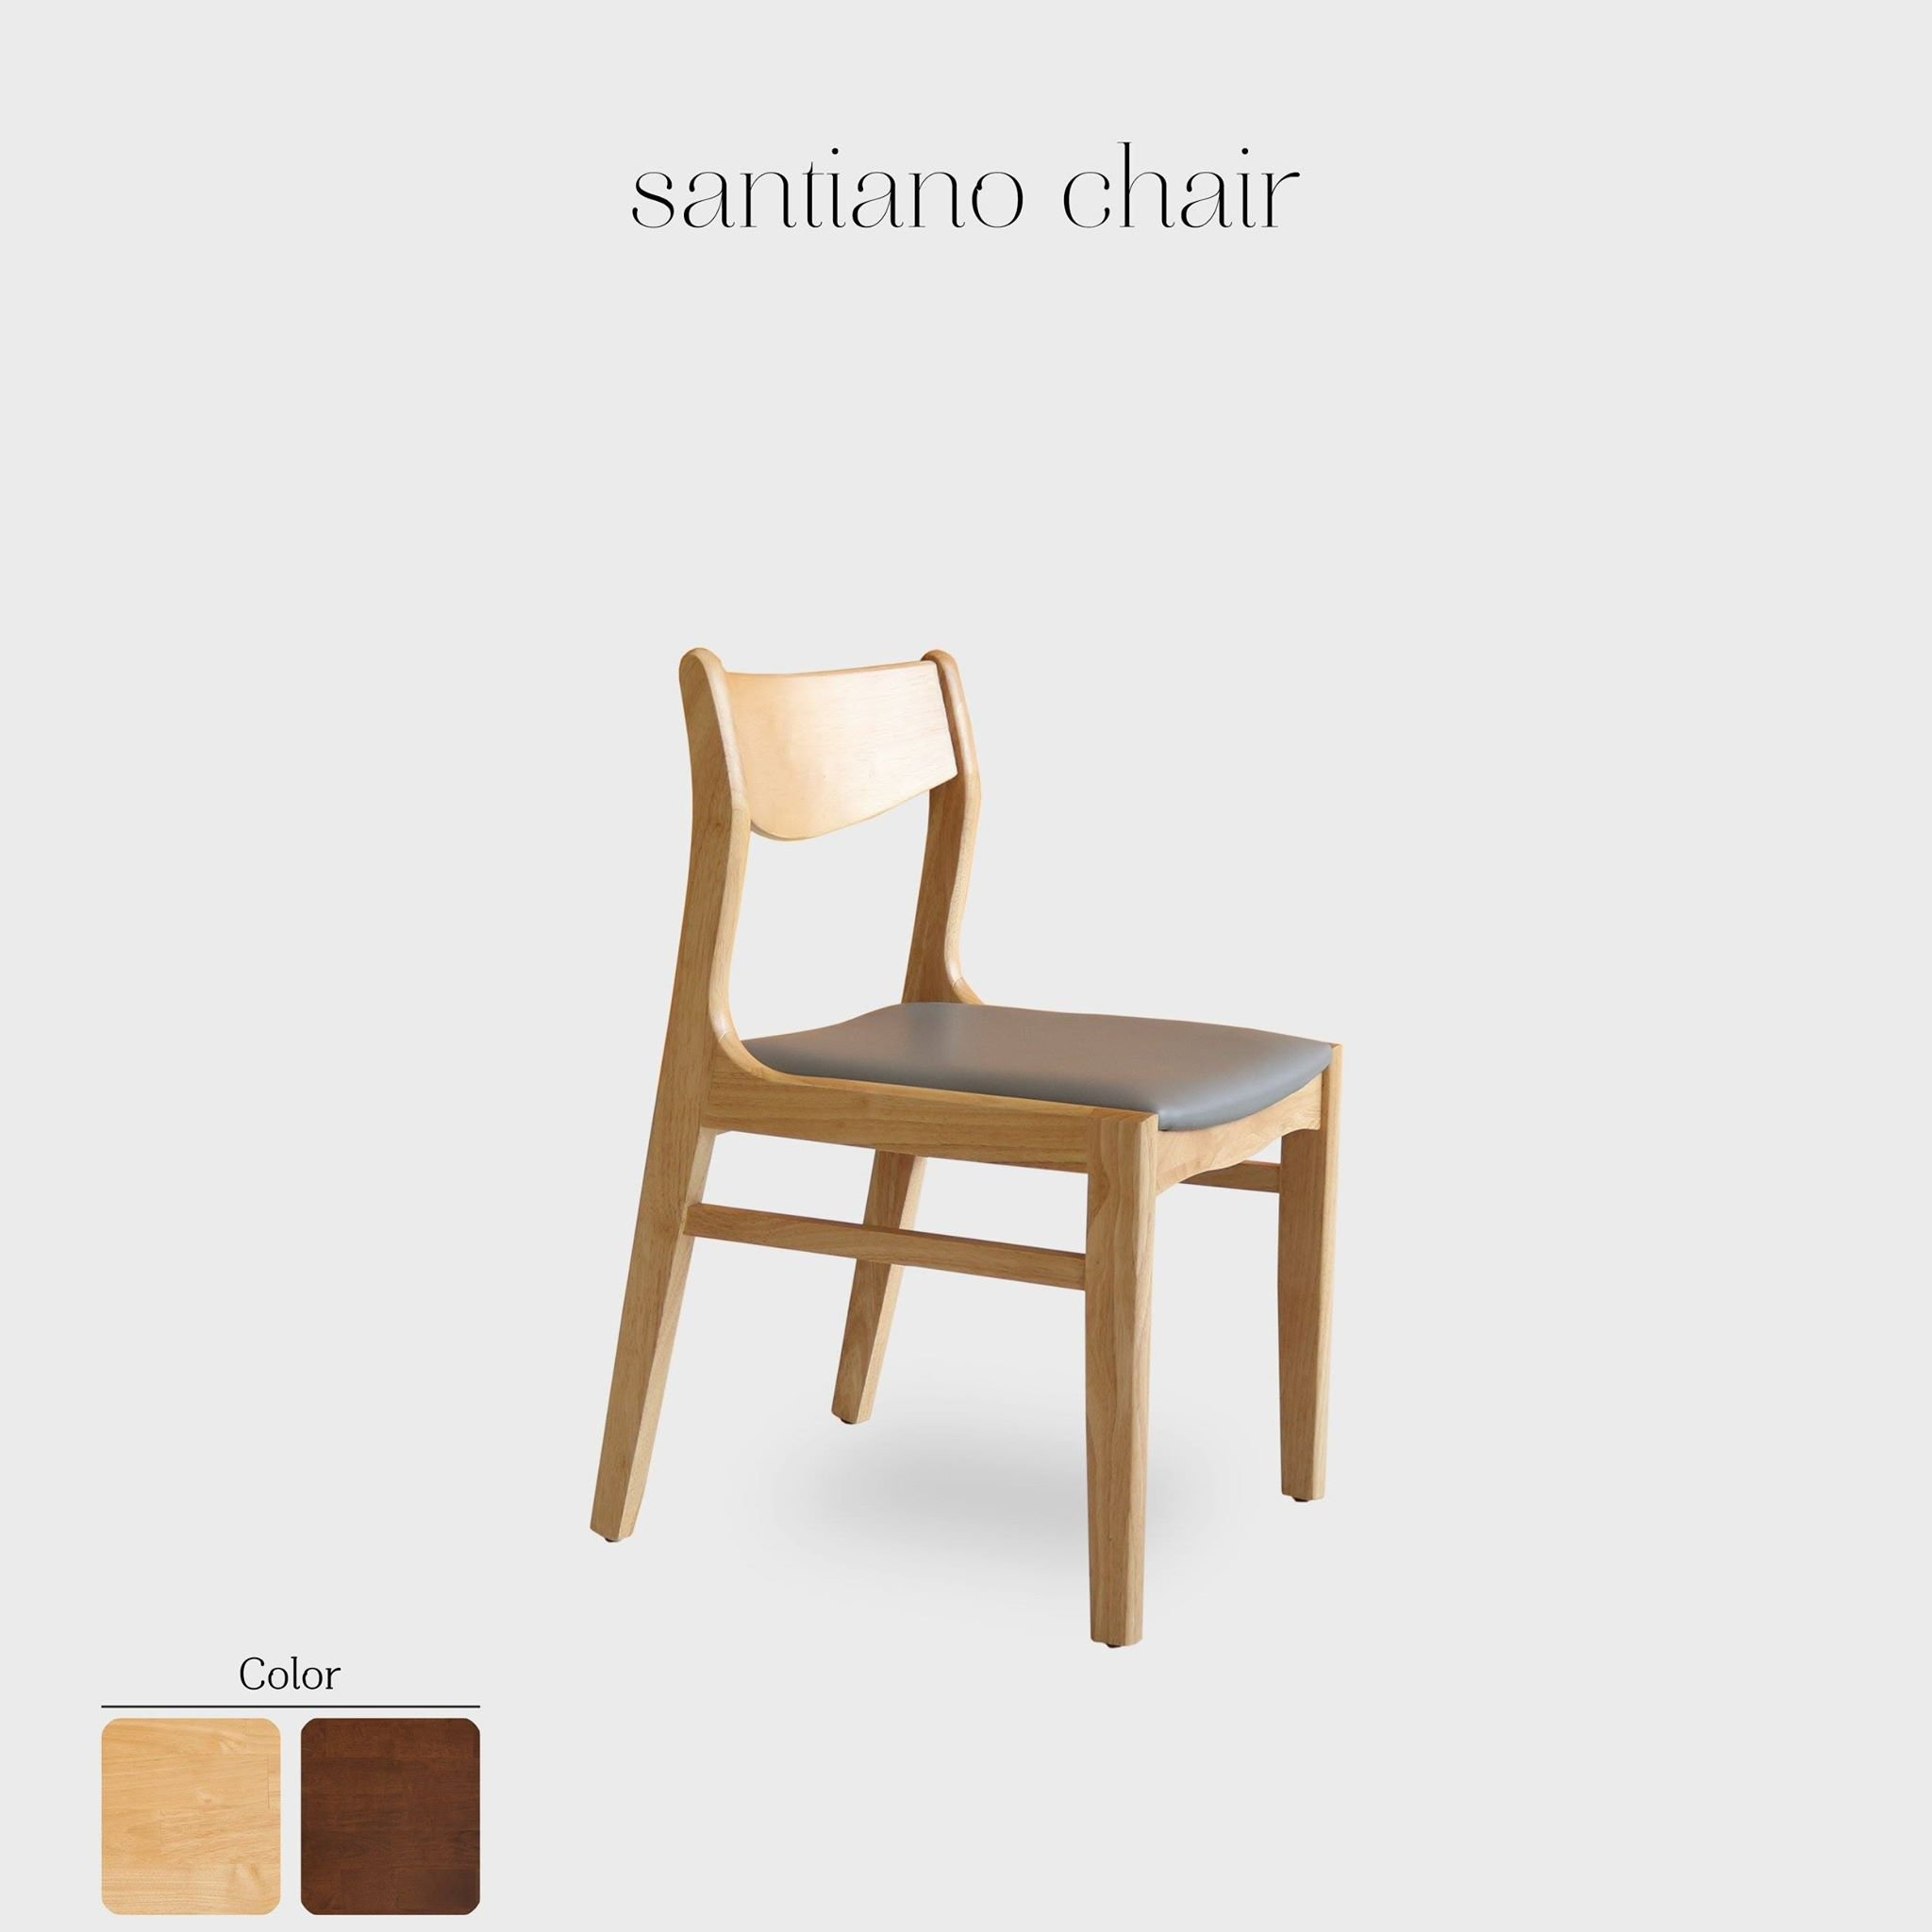 Santiano chair